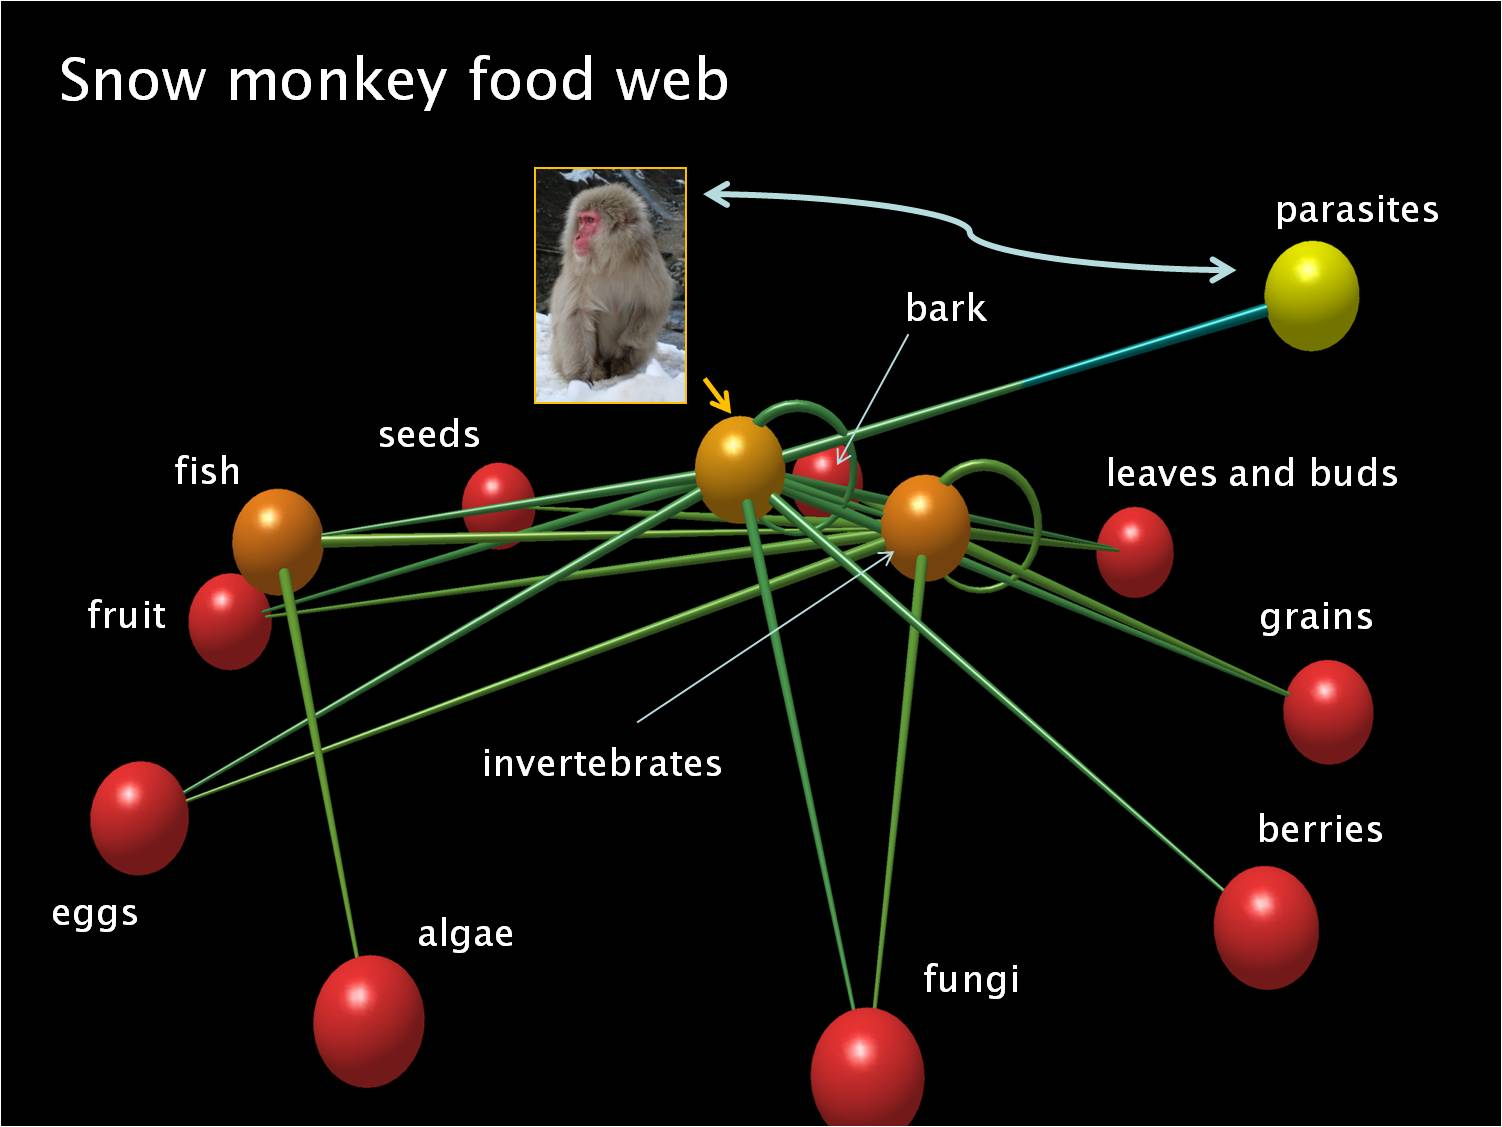 What is the spider monkey's food chain?